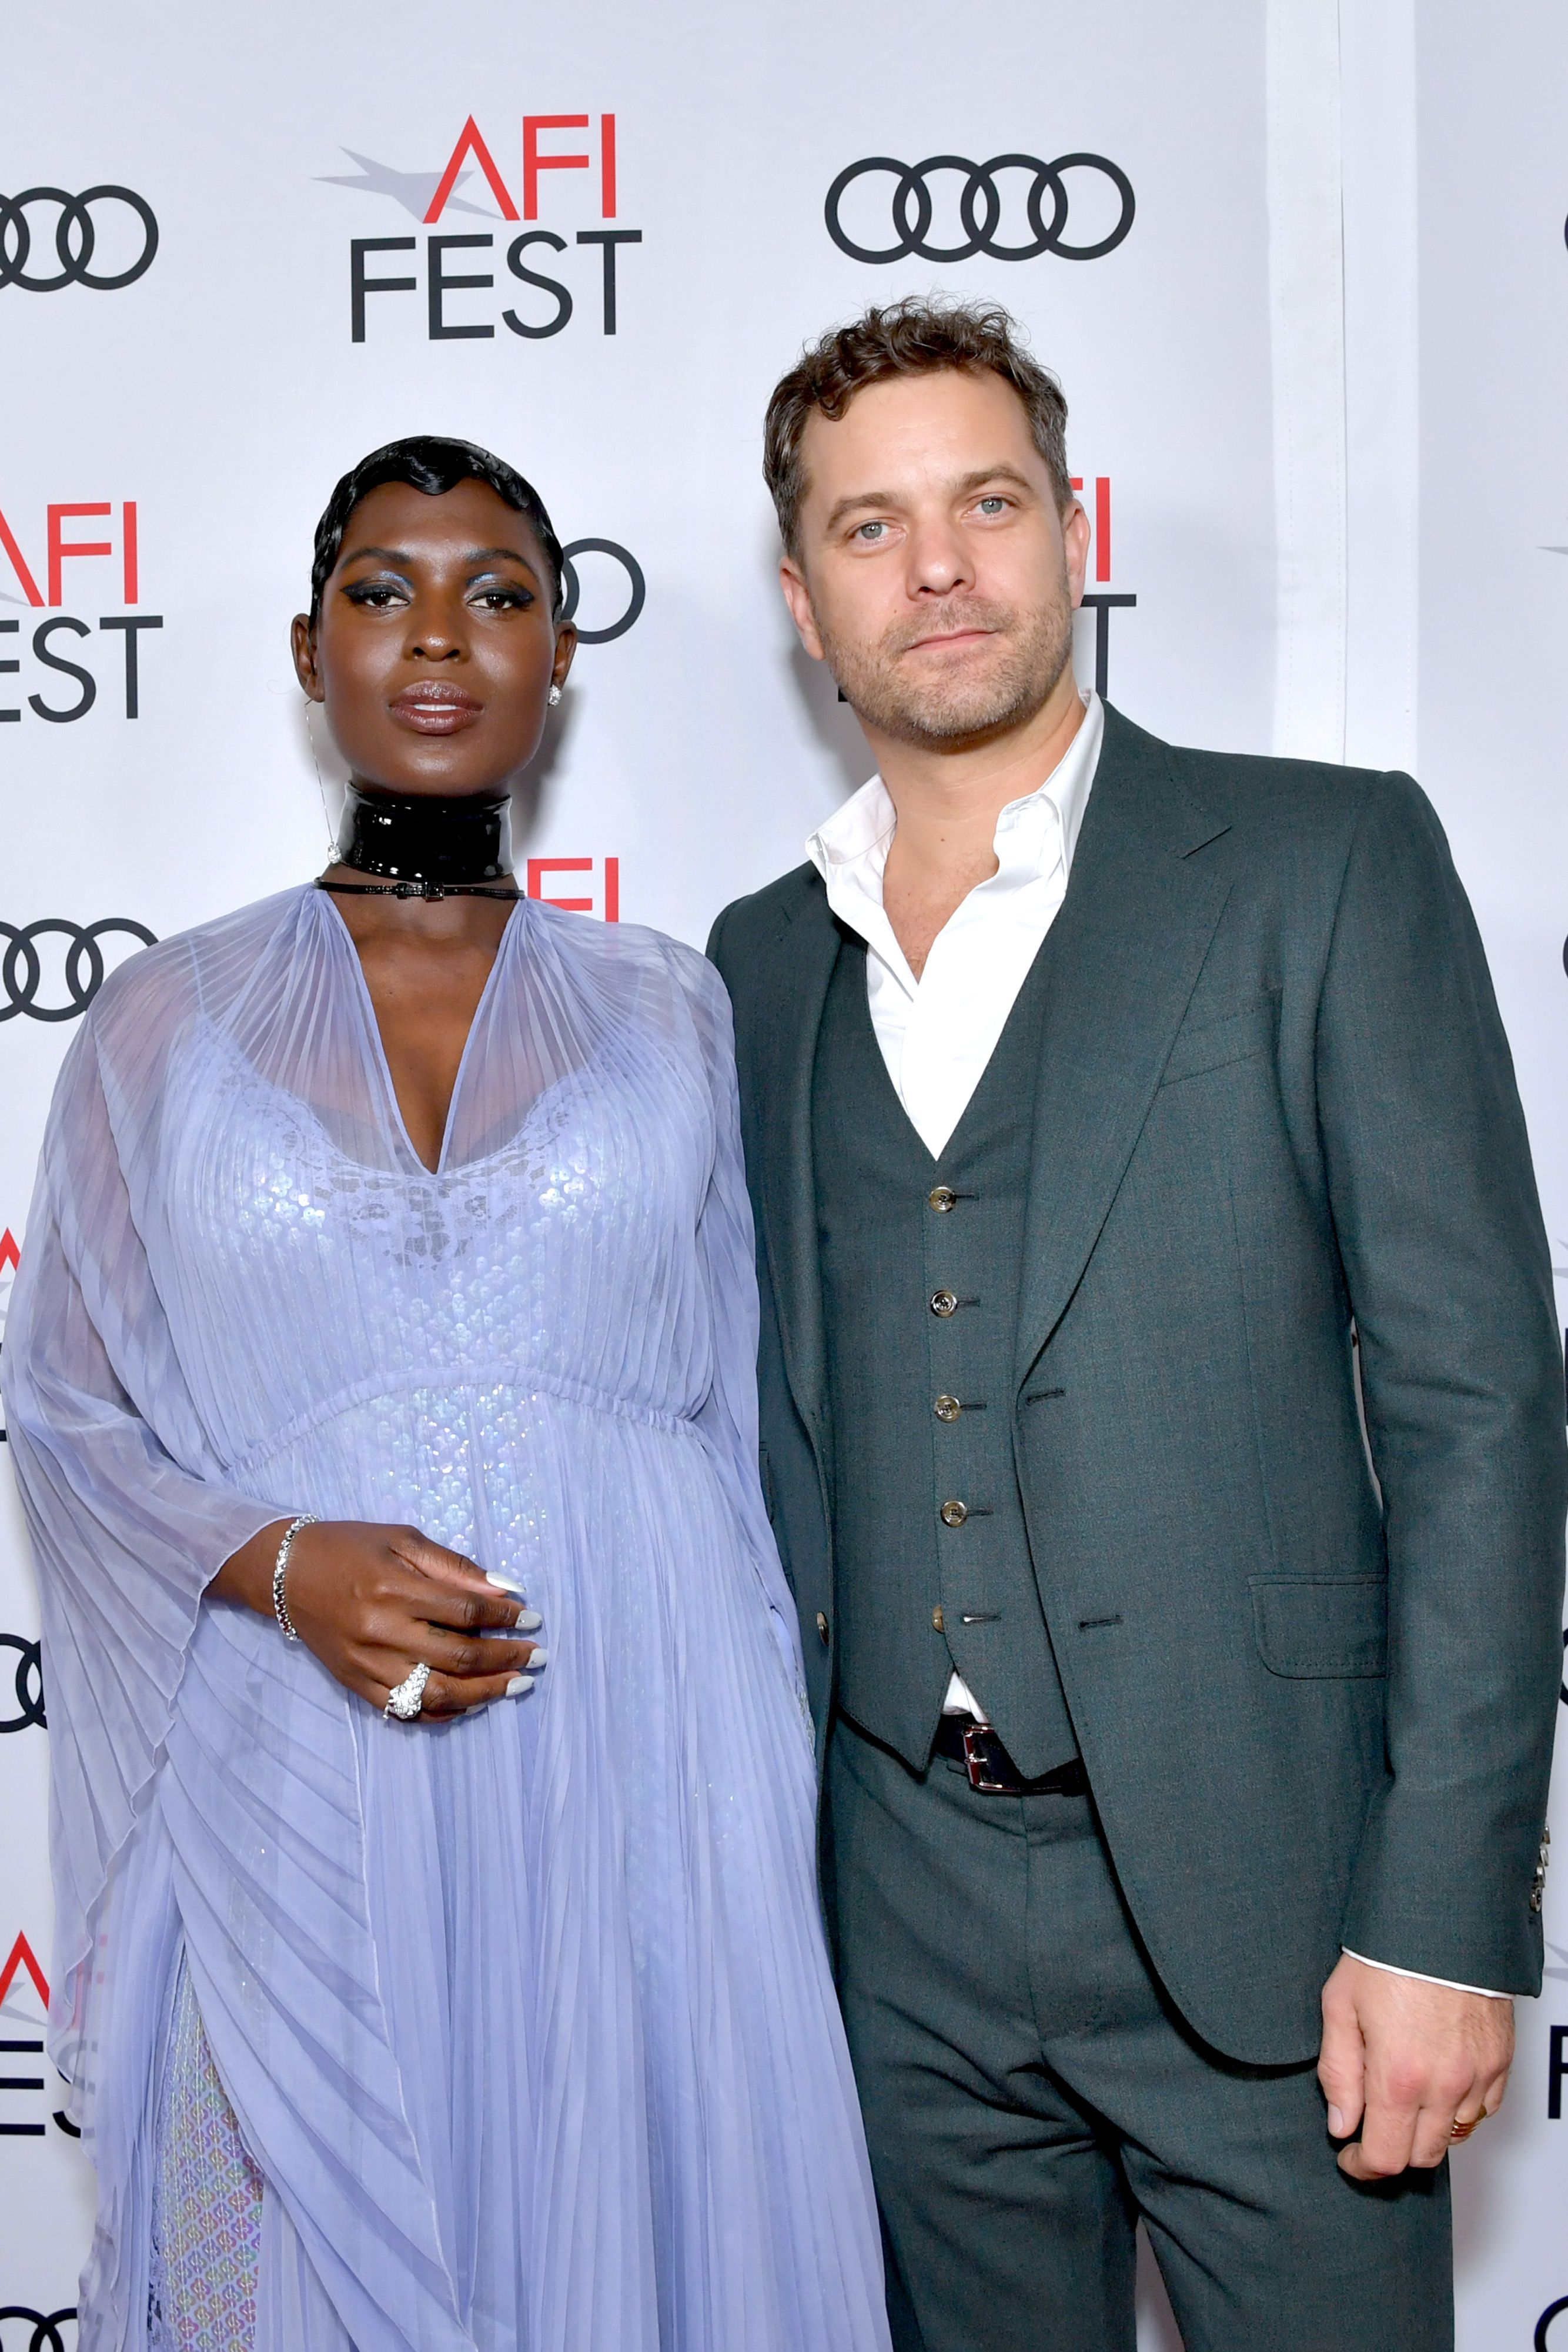 Joshua Jackson And Jodie Turner-Smith's Relationship Timeline: Everything You Need To Know About The Actors' Romance